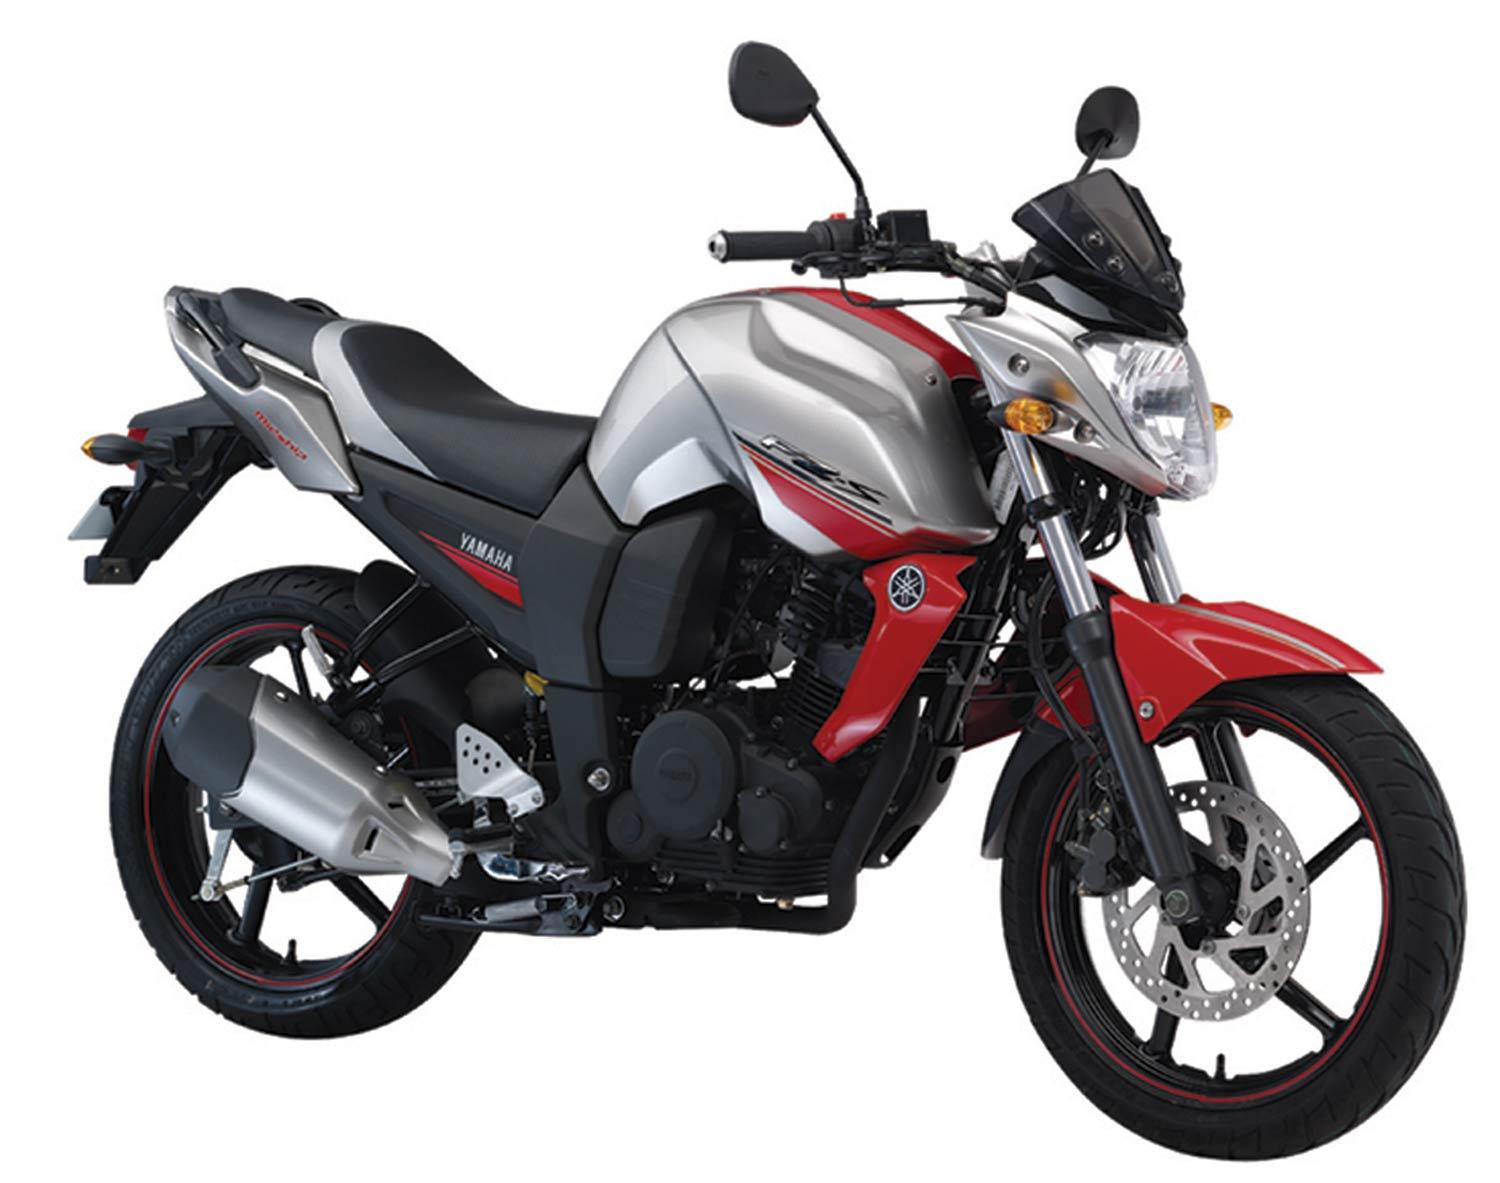 Yamaha FZS Version 2 Motorcycle Specification